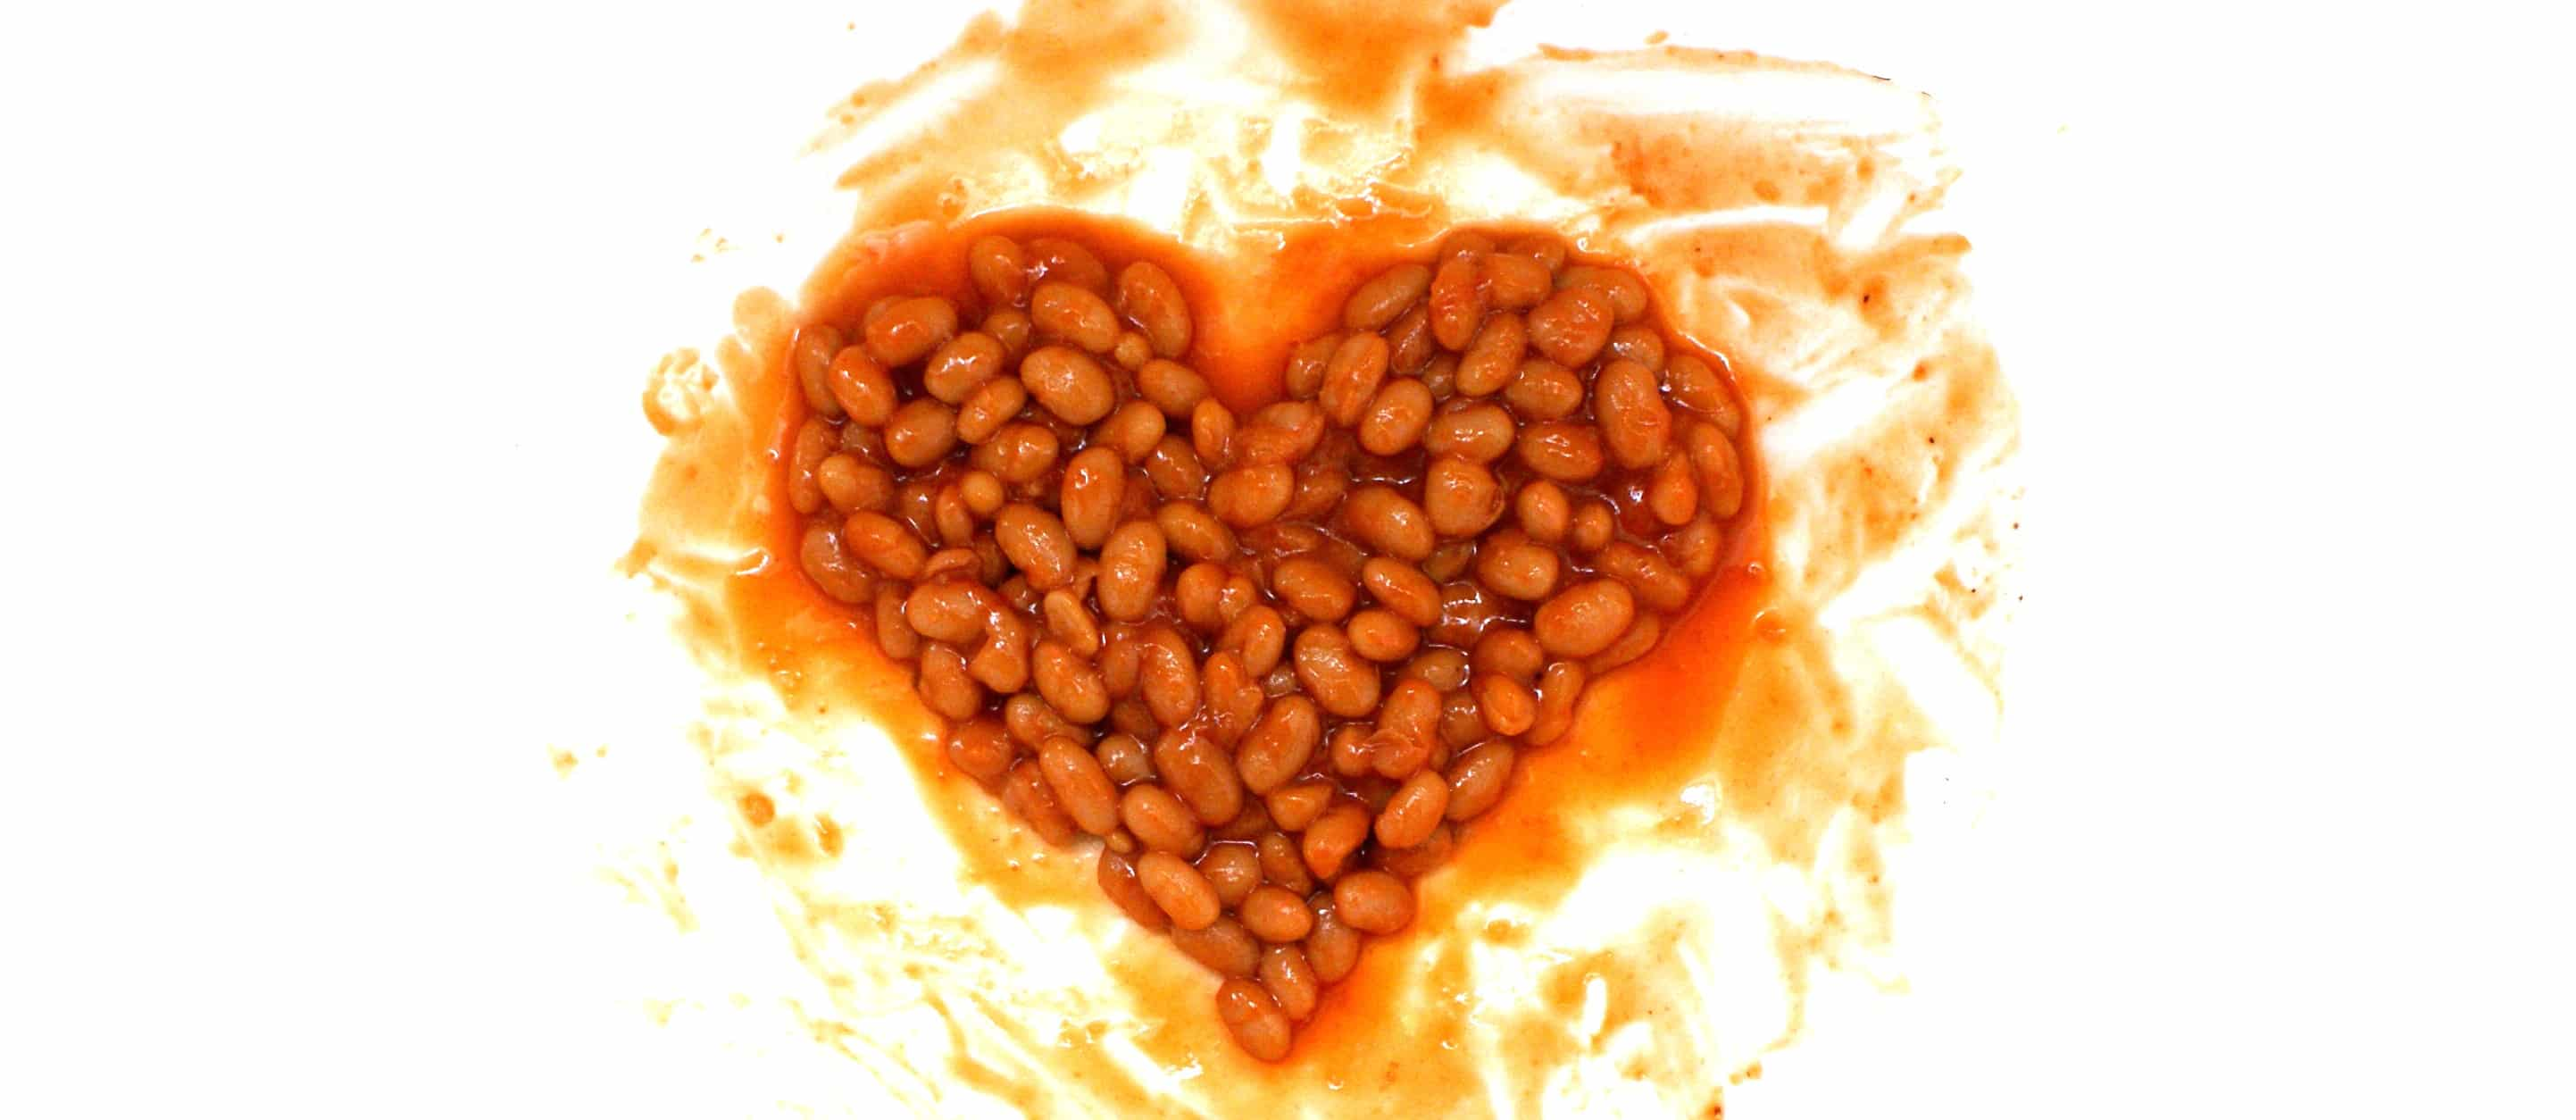 Are Canned Beans as Healthy as Cooked Beans?